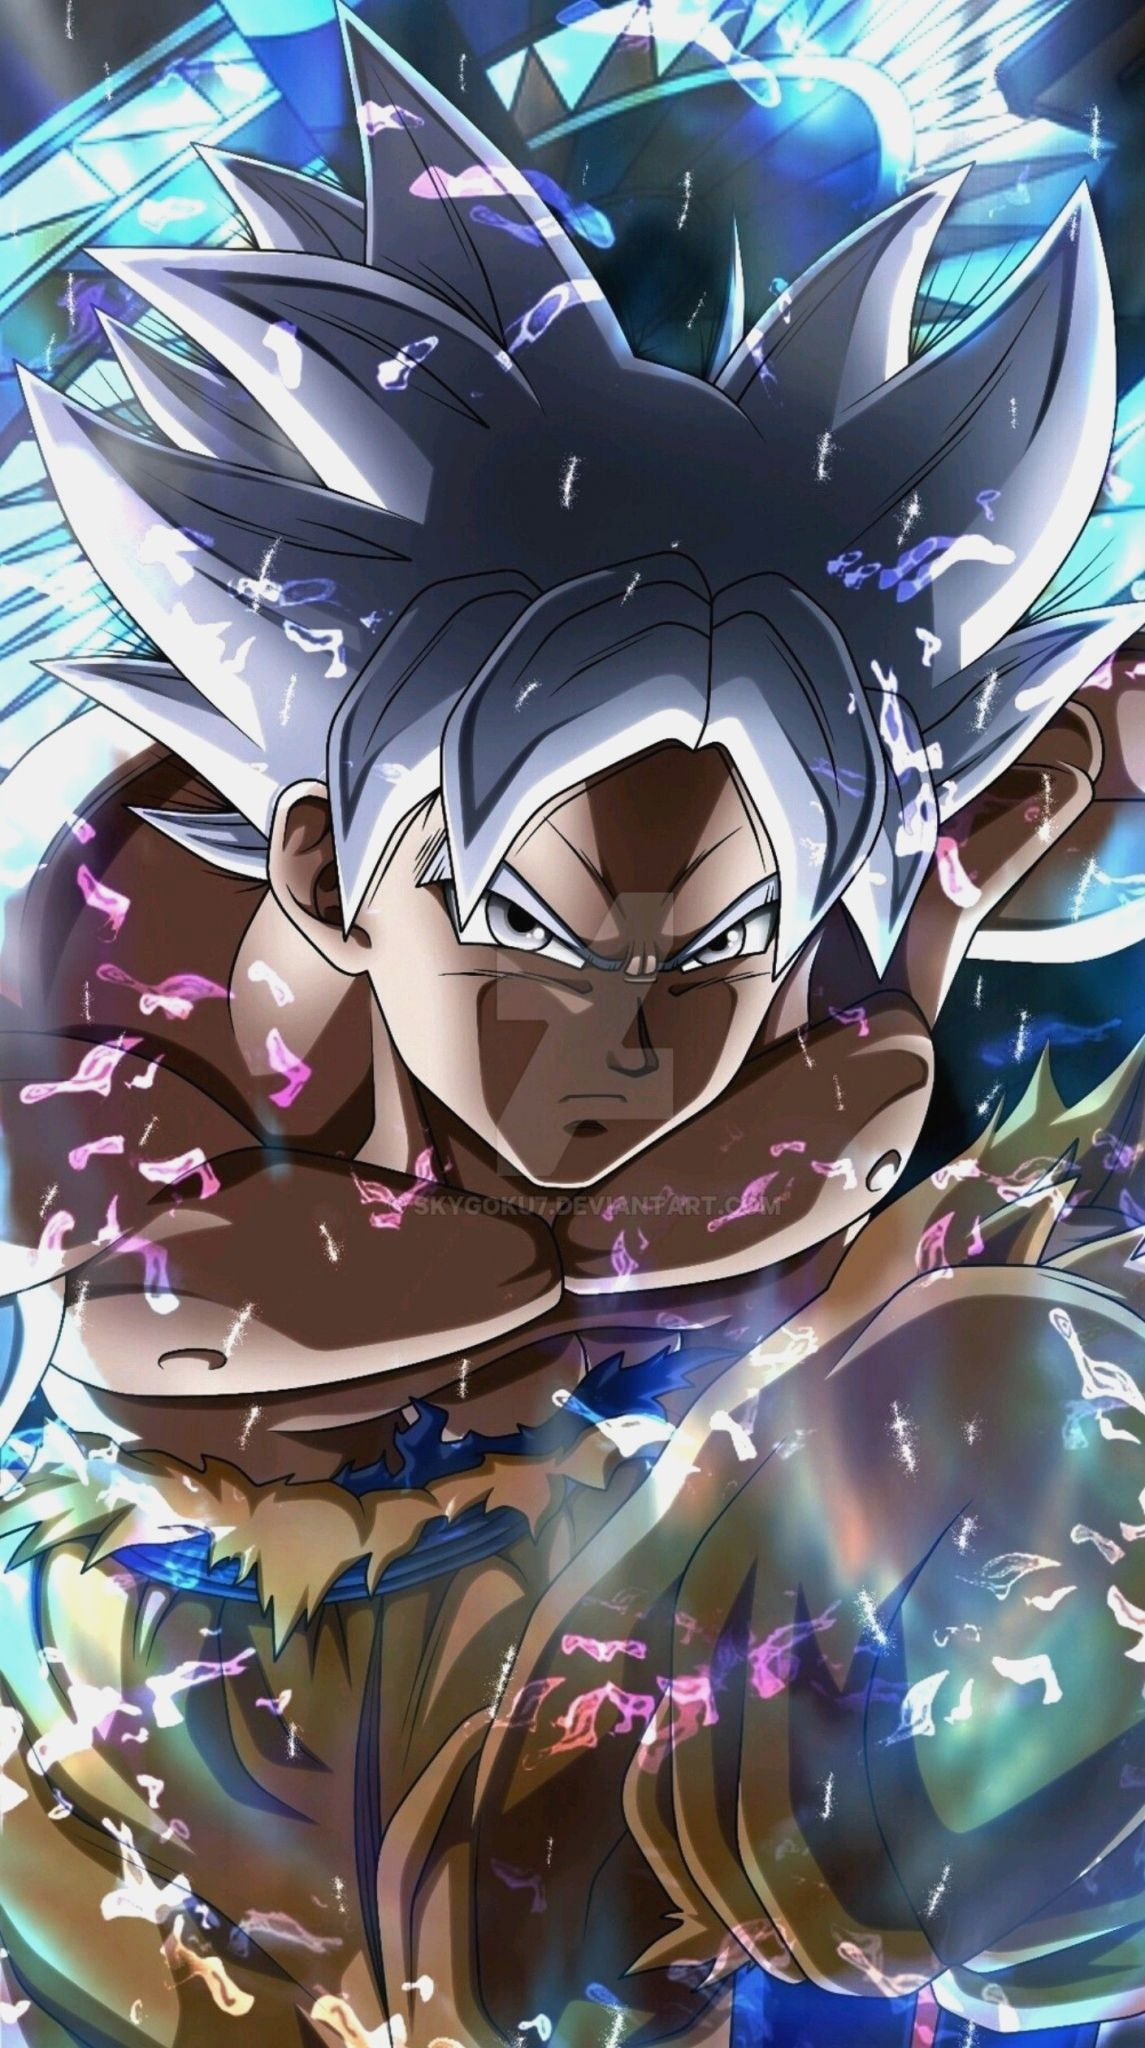 Elegant Goku Ultra Instinct Live Wallpaper Download Dragon Ball Artwork Anime Dragon Ball Super Anime Dragon Ball